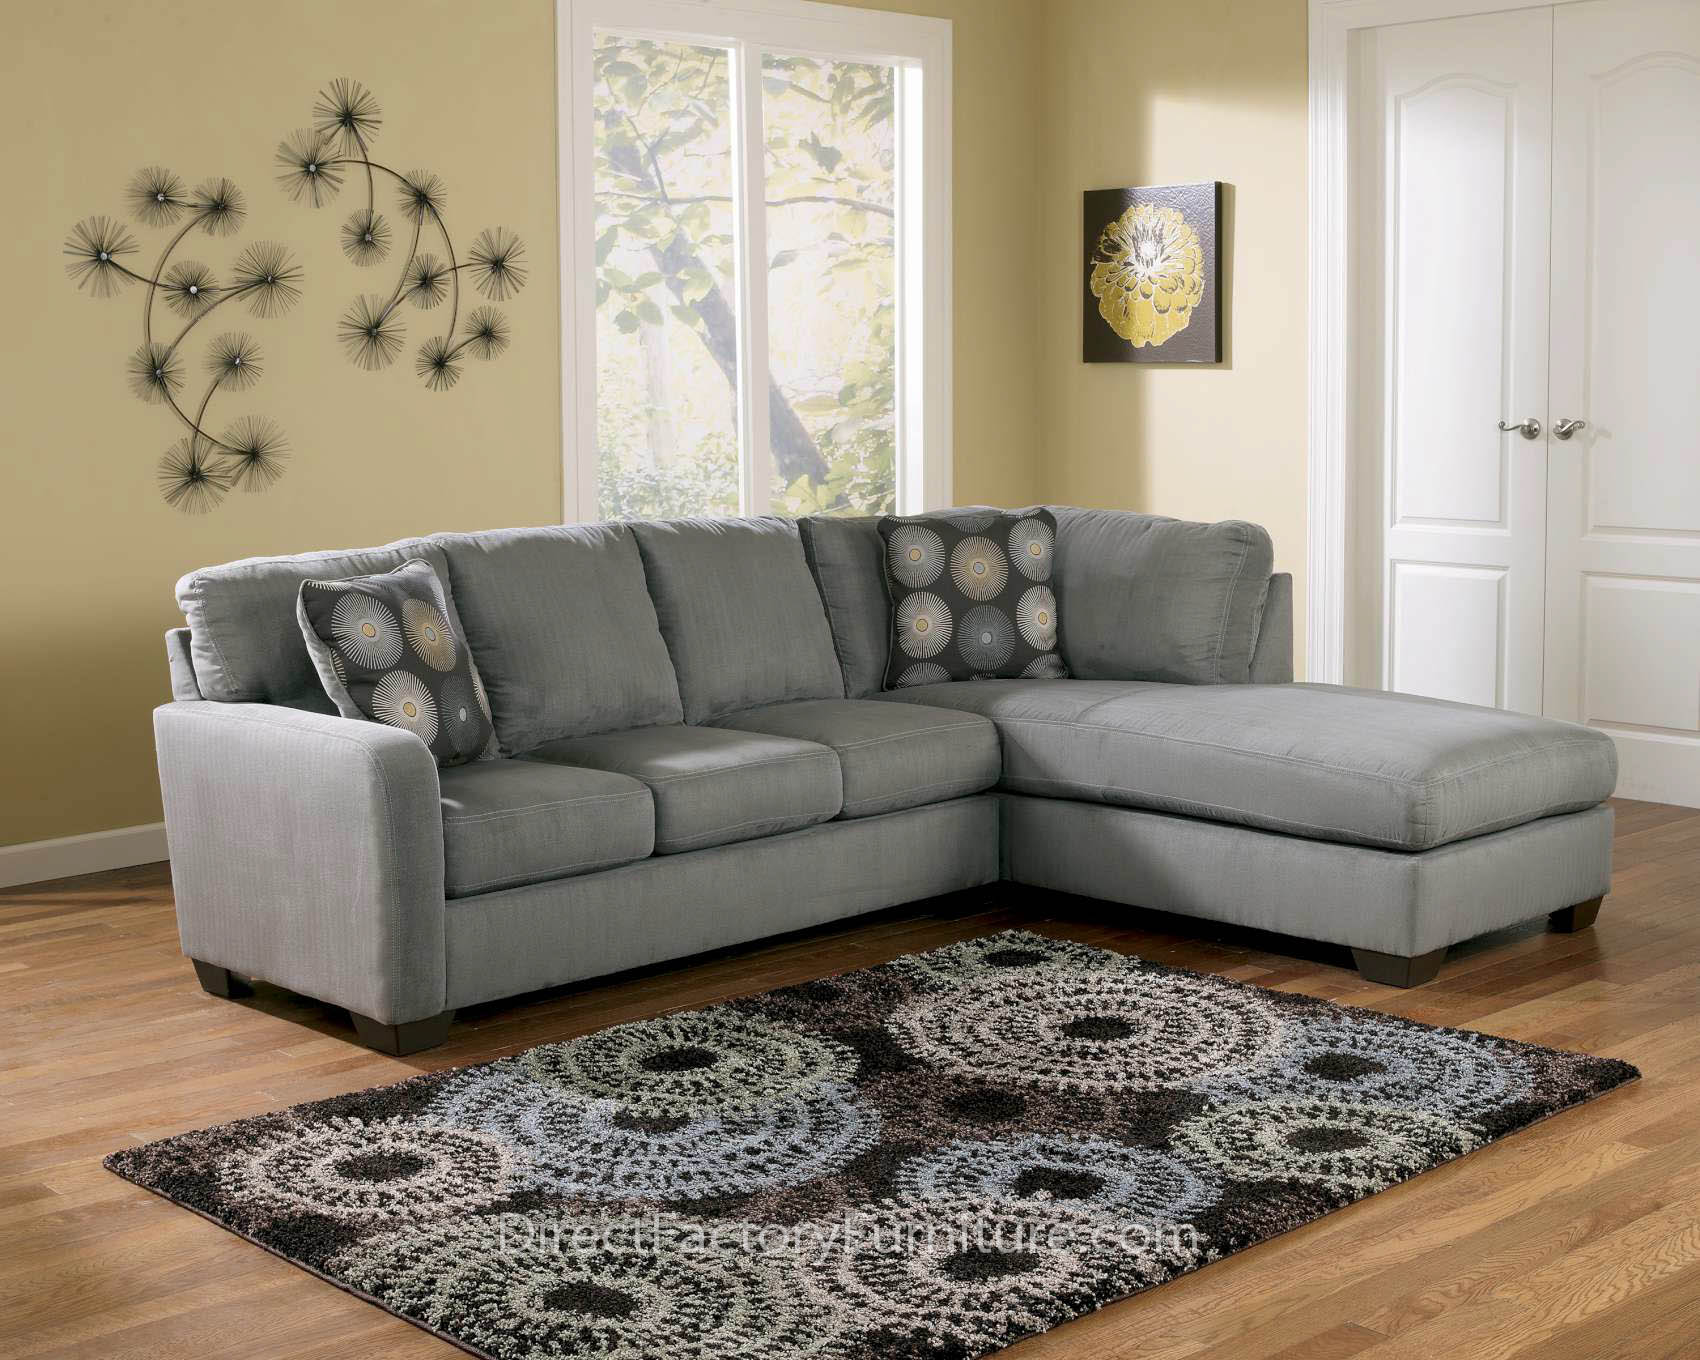 Classy l shaped couch for home decoration with l shaped couch covers